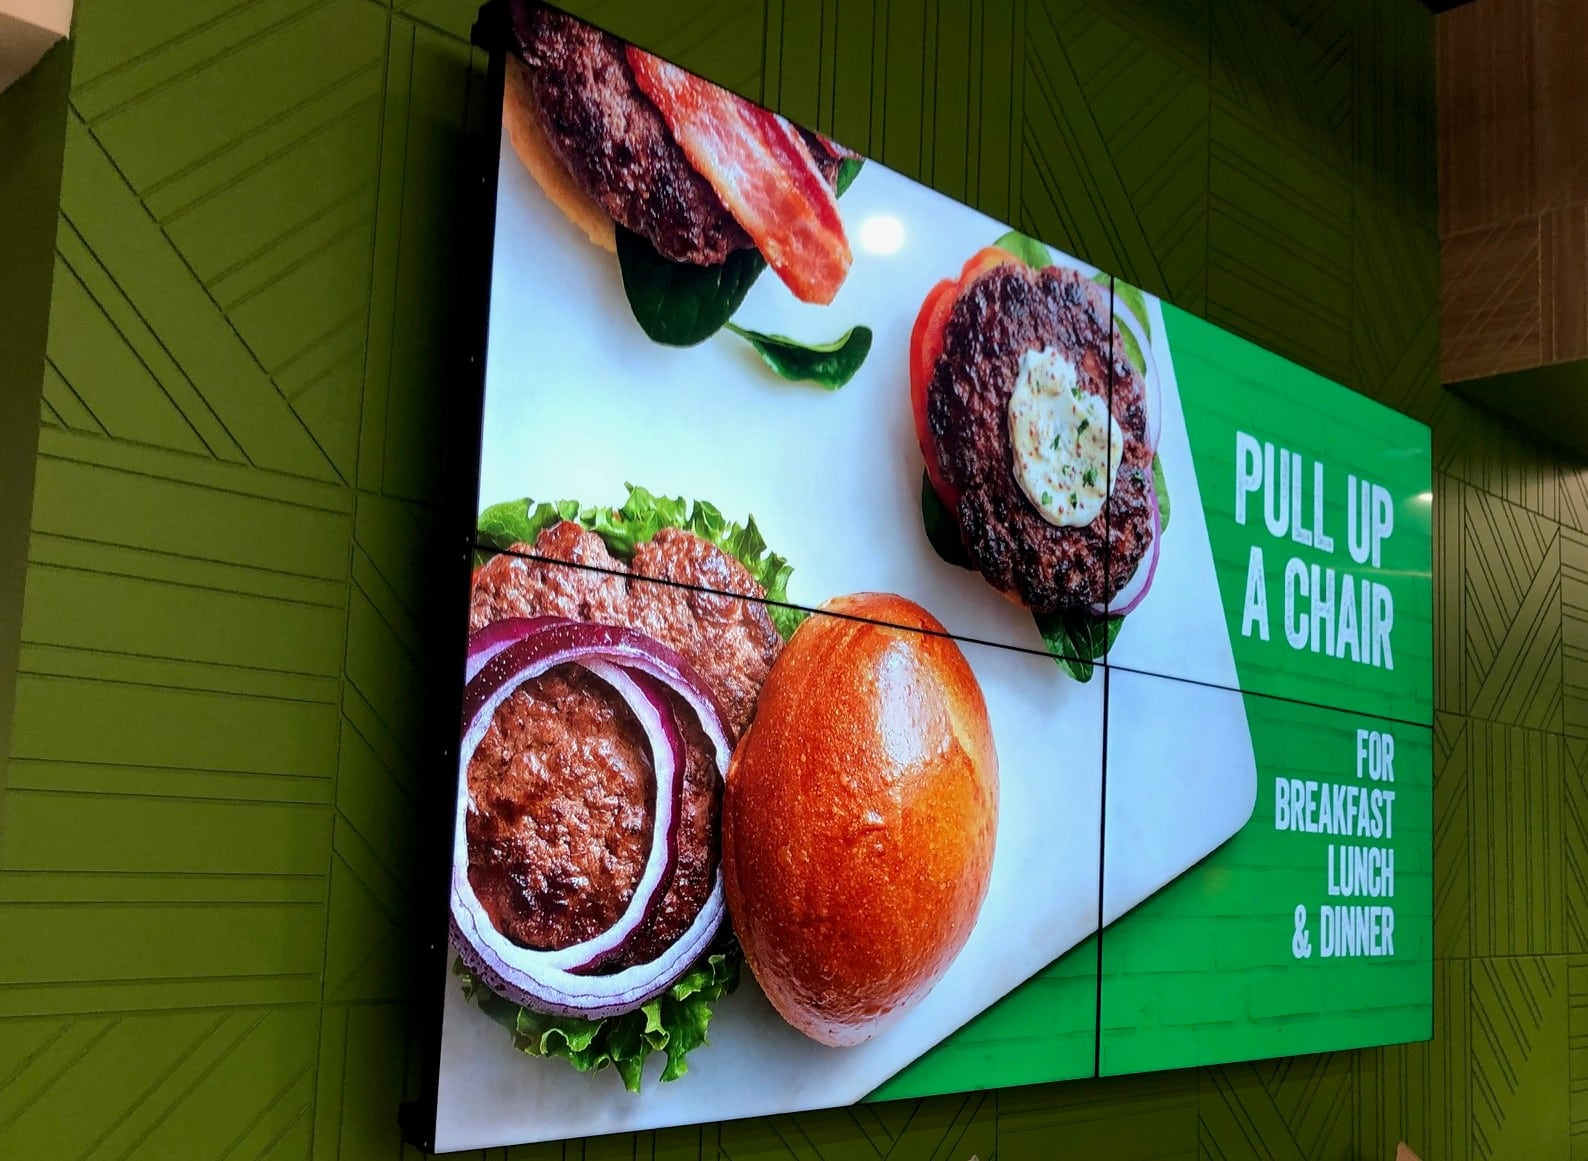 Sobeys renews its confidence in VIF Télé for its in-store Digital Signage network